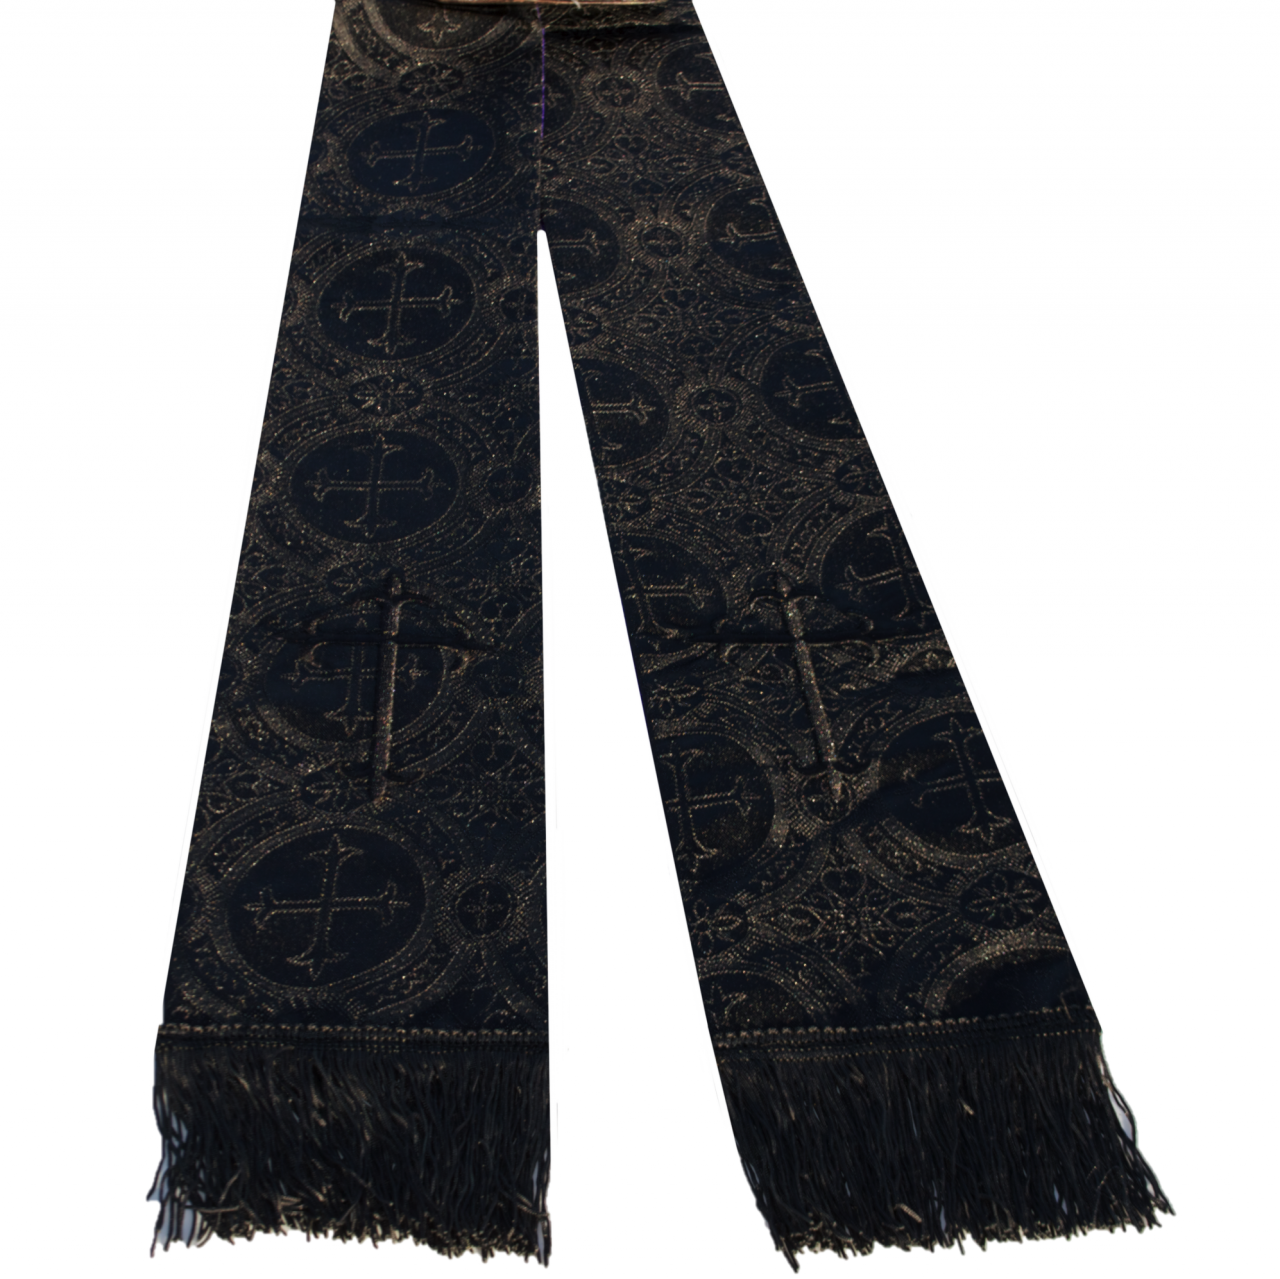 Premium Brocade Clergy Stole - Solid Black